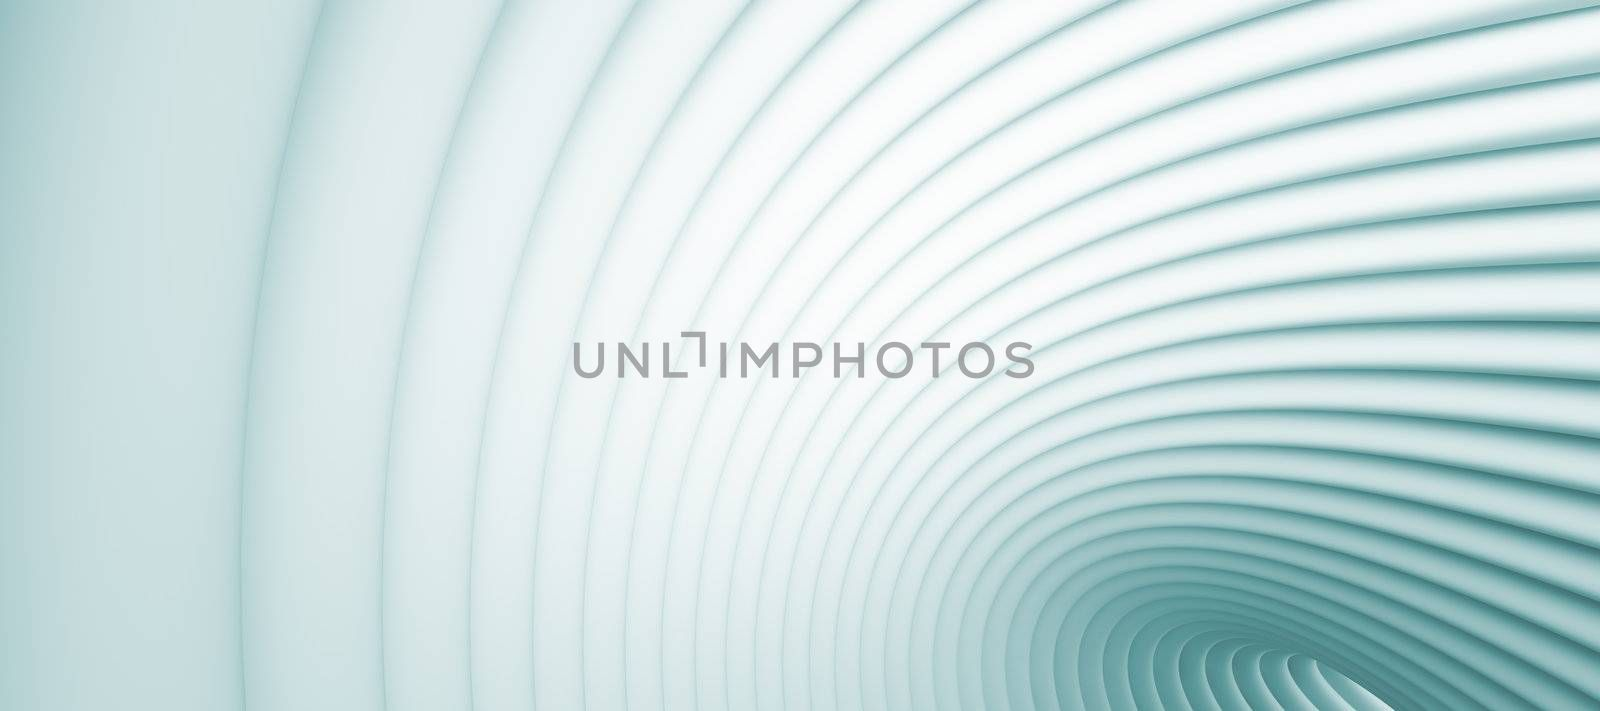 Abstract Architectural Background or Abstract Tunnel